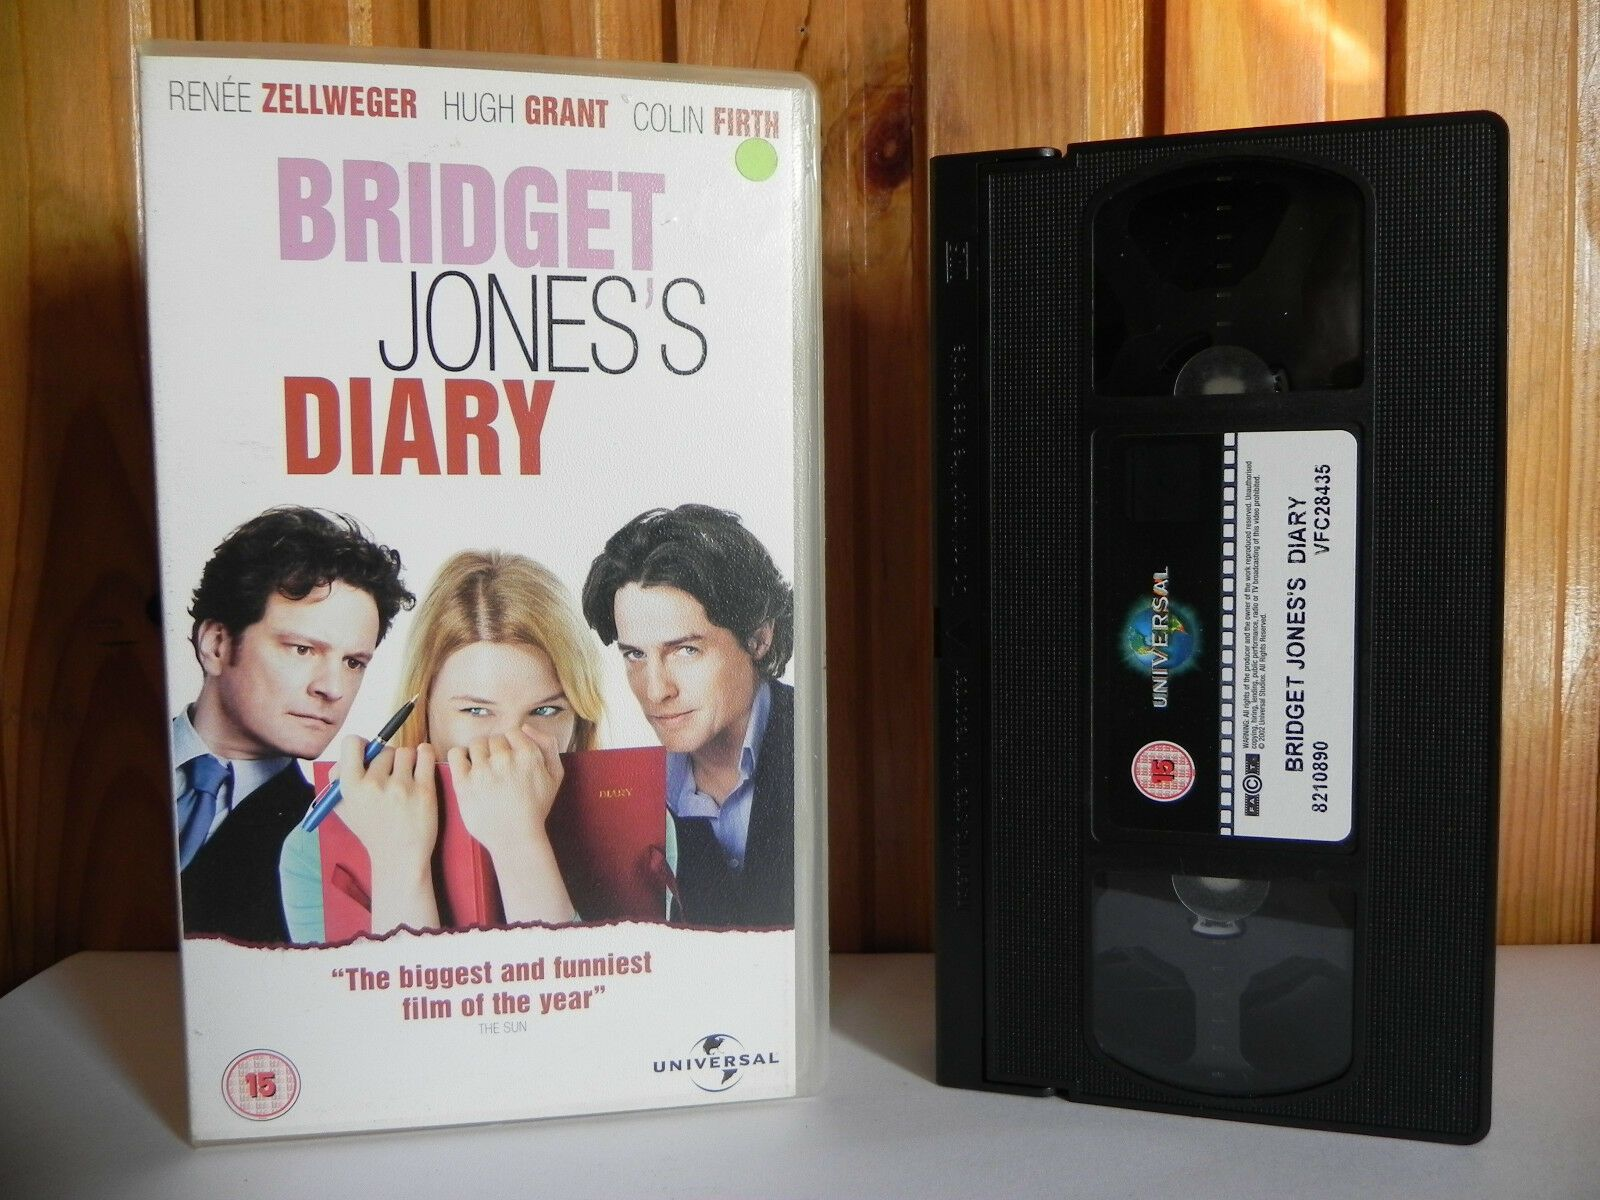 15, 2003, Bridget, Comedy, Diary, Grant, Honor Blackman, Hugh, PAL, Renee, Sharon Maguire, Universal, VHS, Zellweger